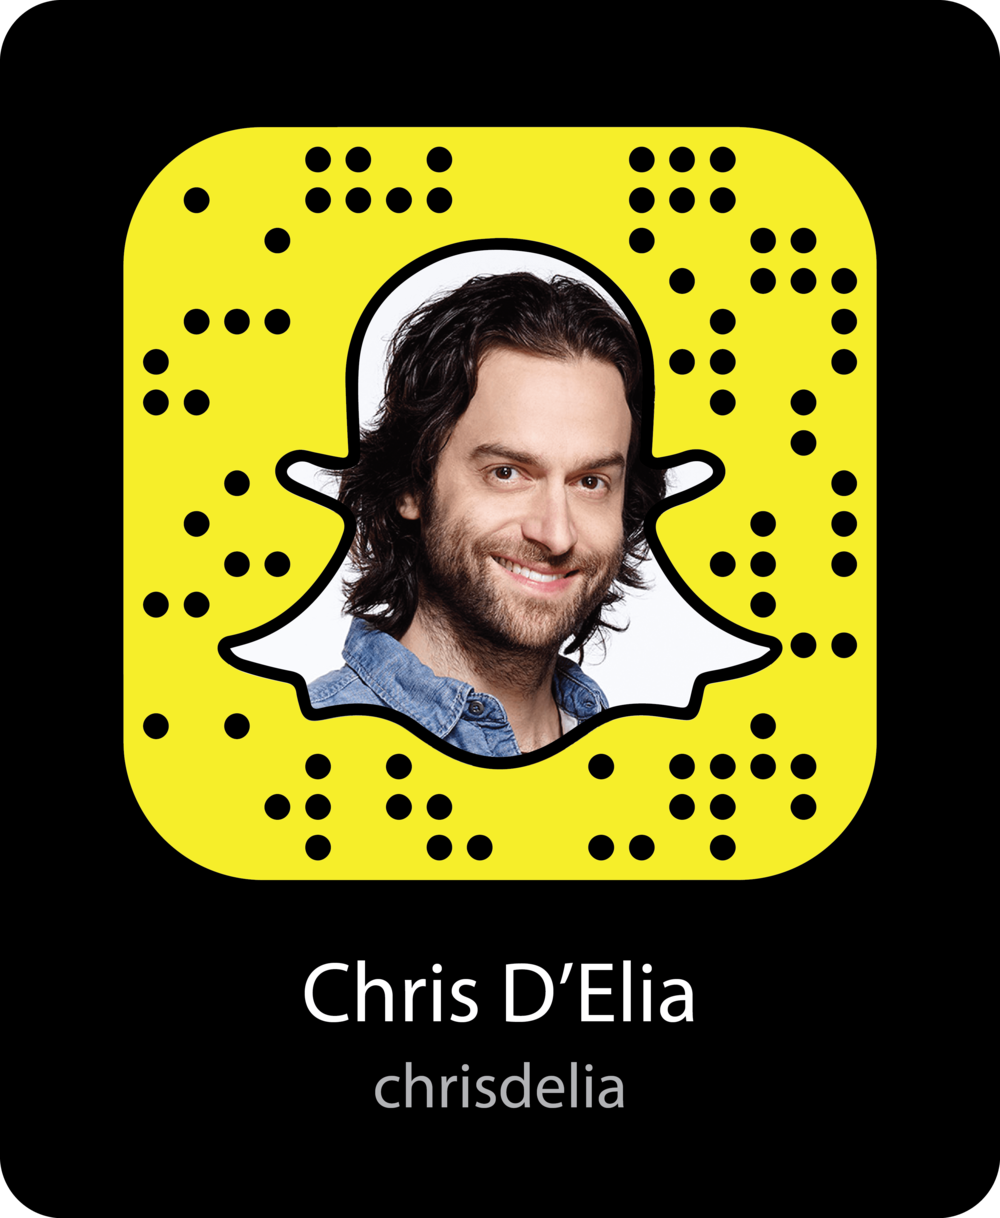 chris-delia-vine-celebrity-snapchat-snapcode